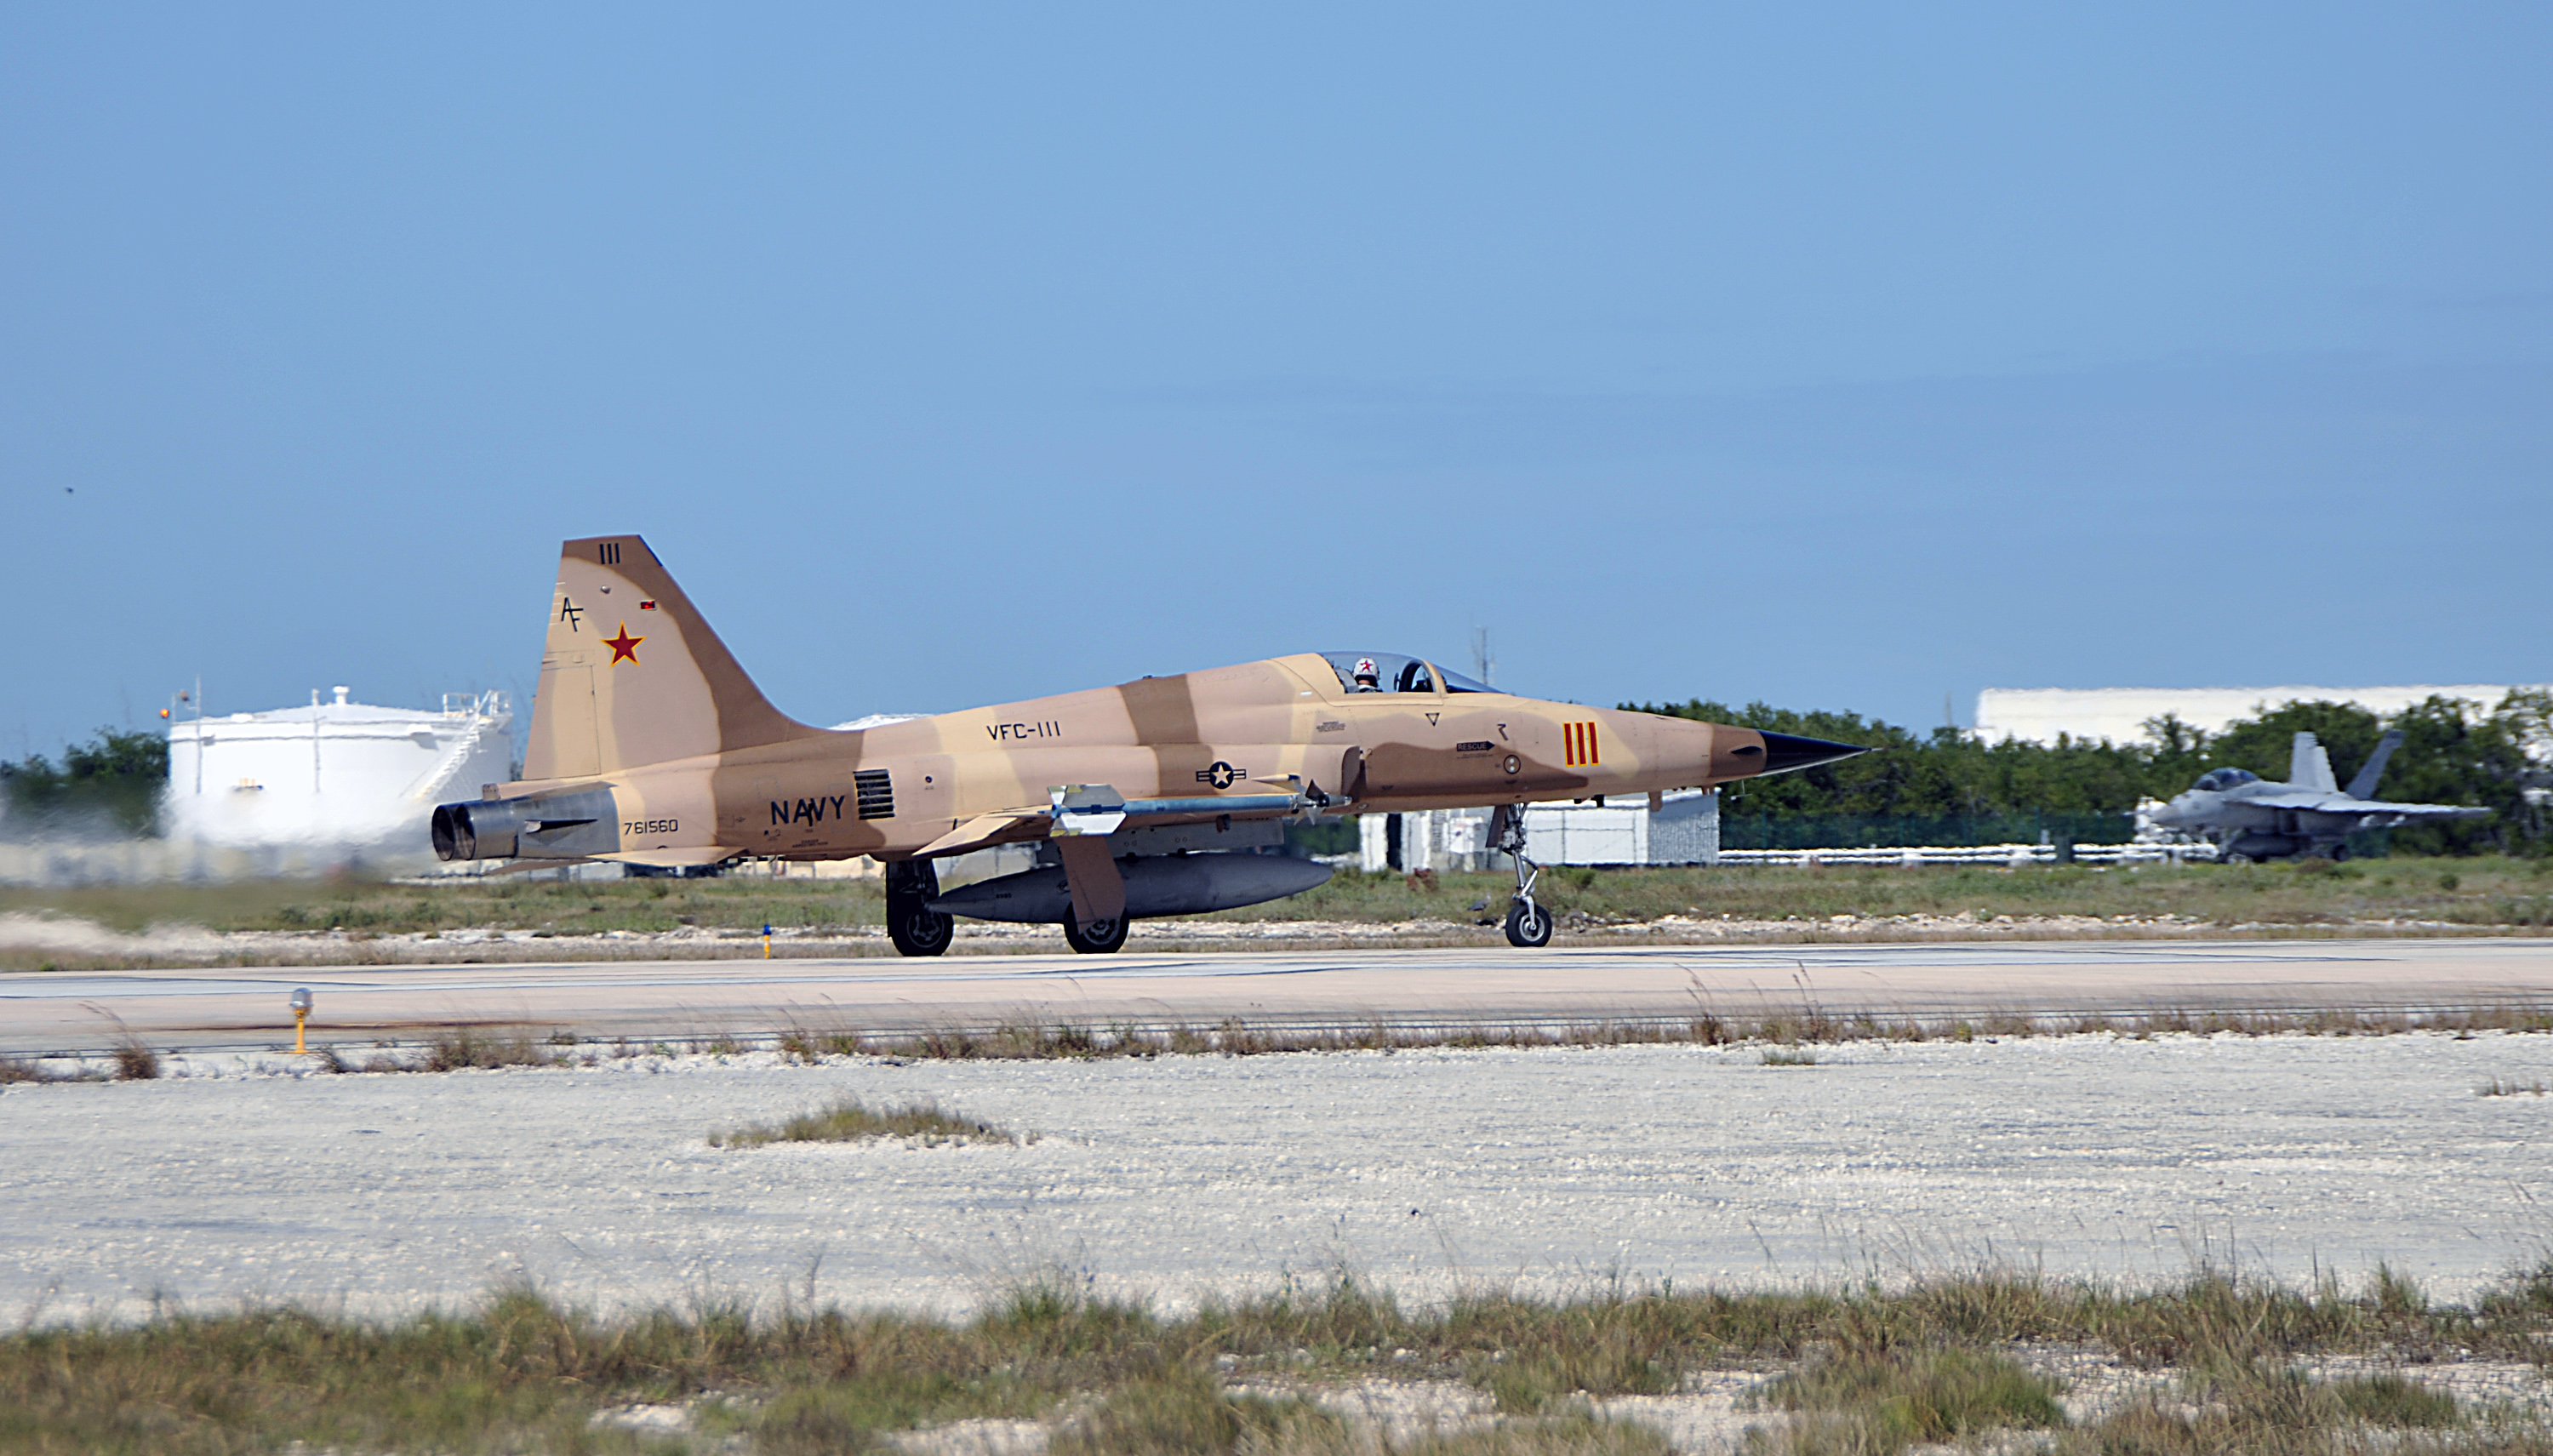 Navy fighter aircraft crashes near Key West